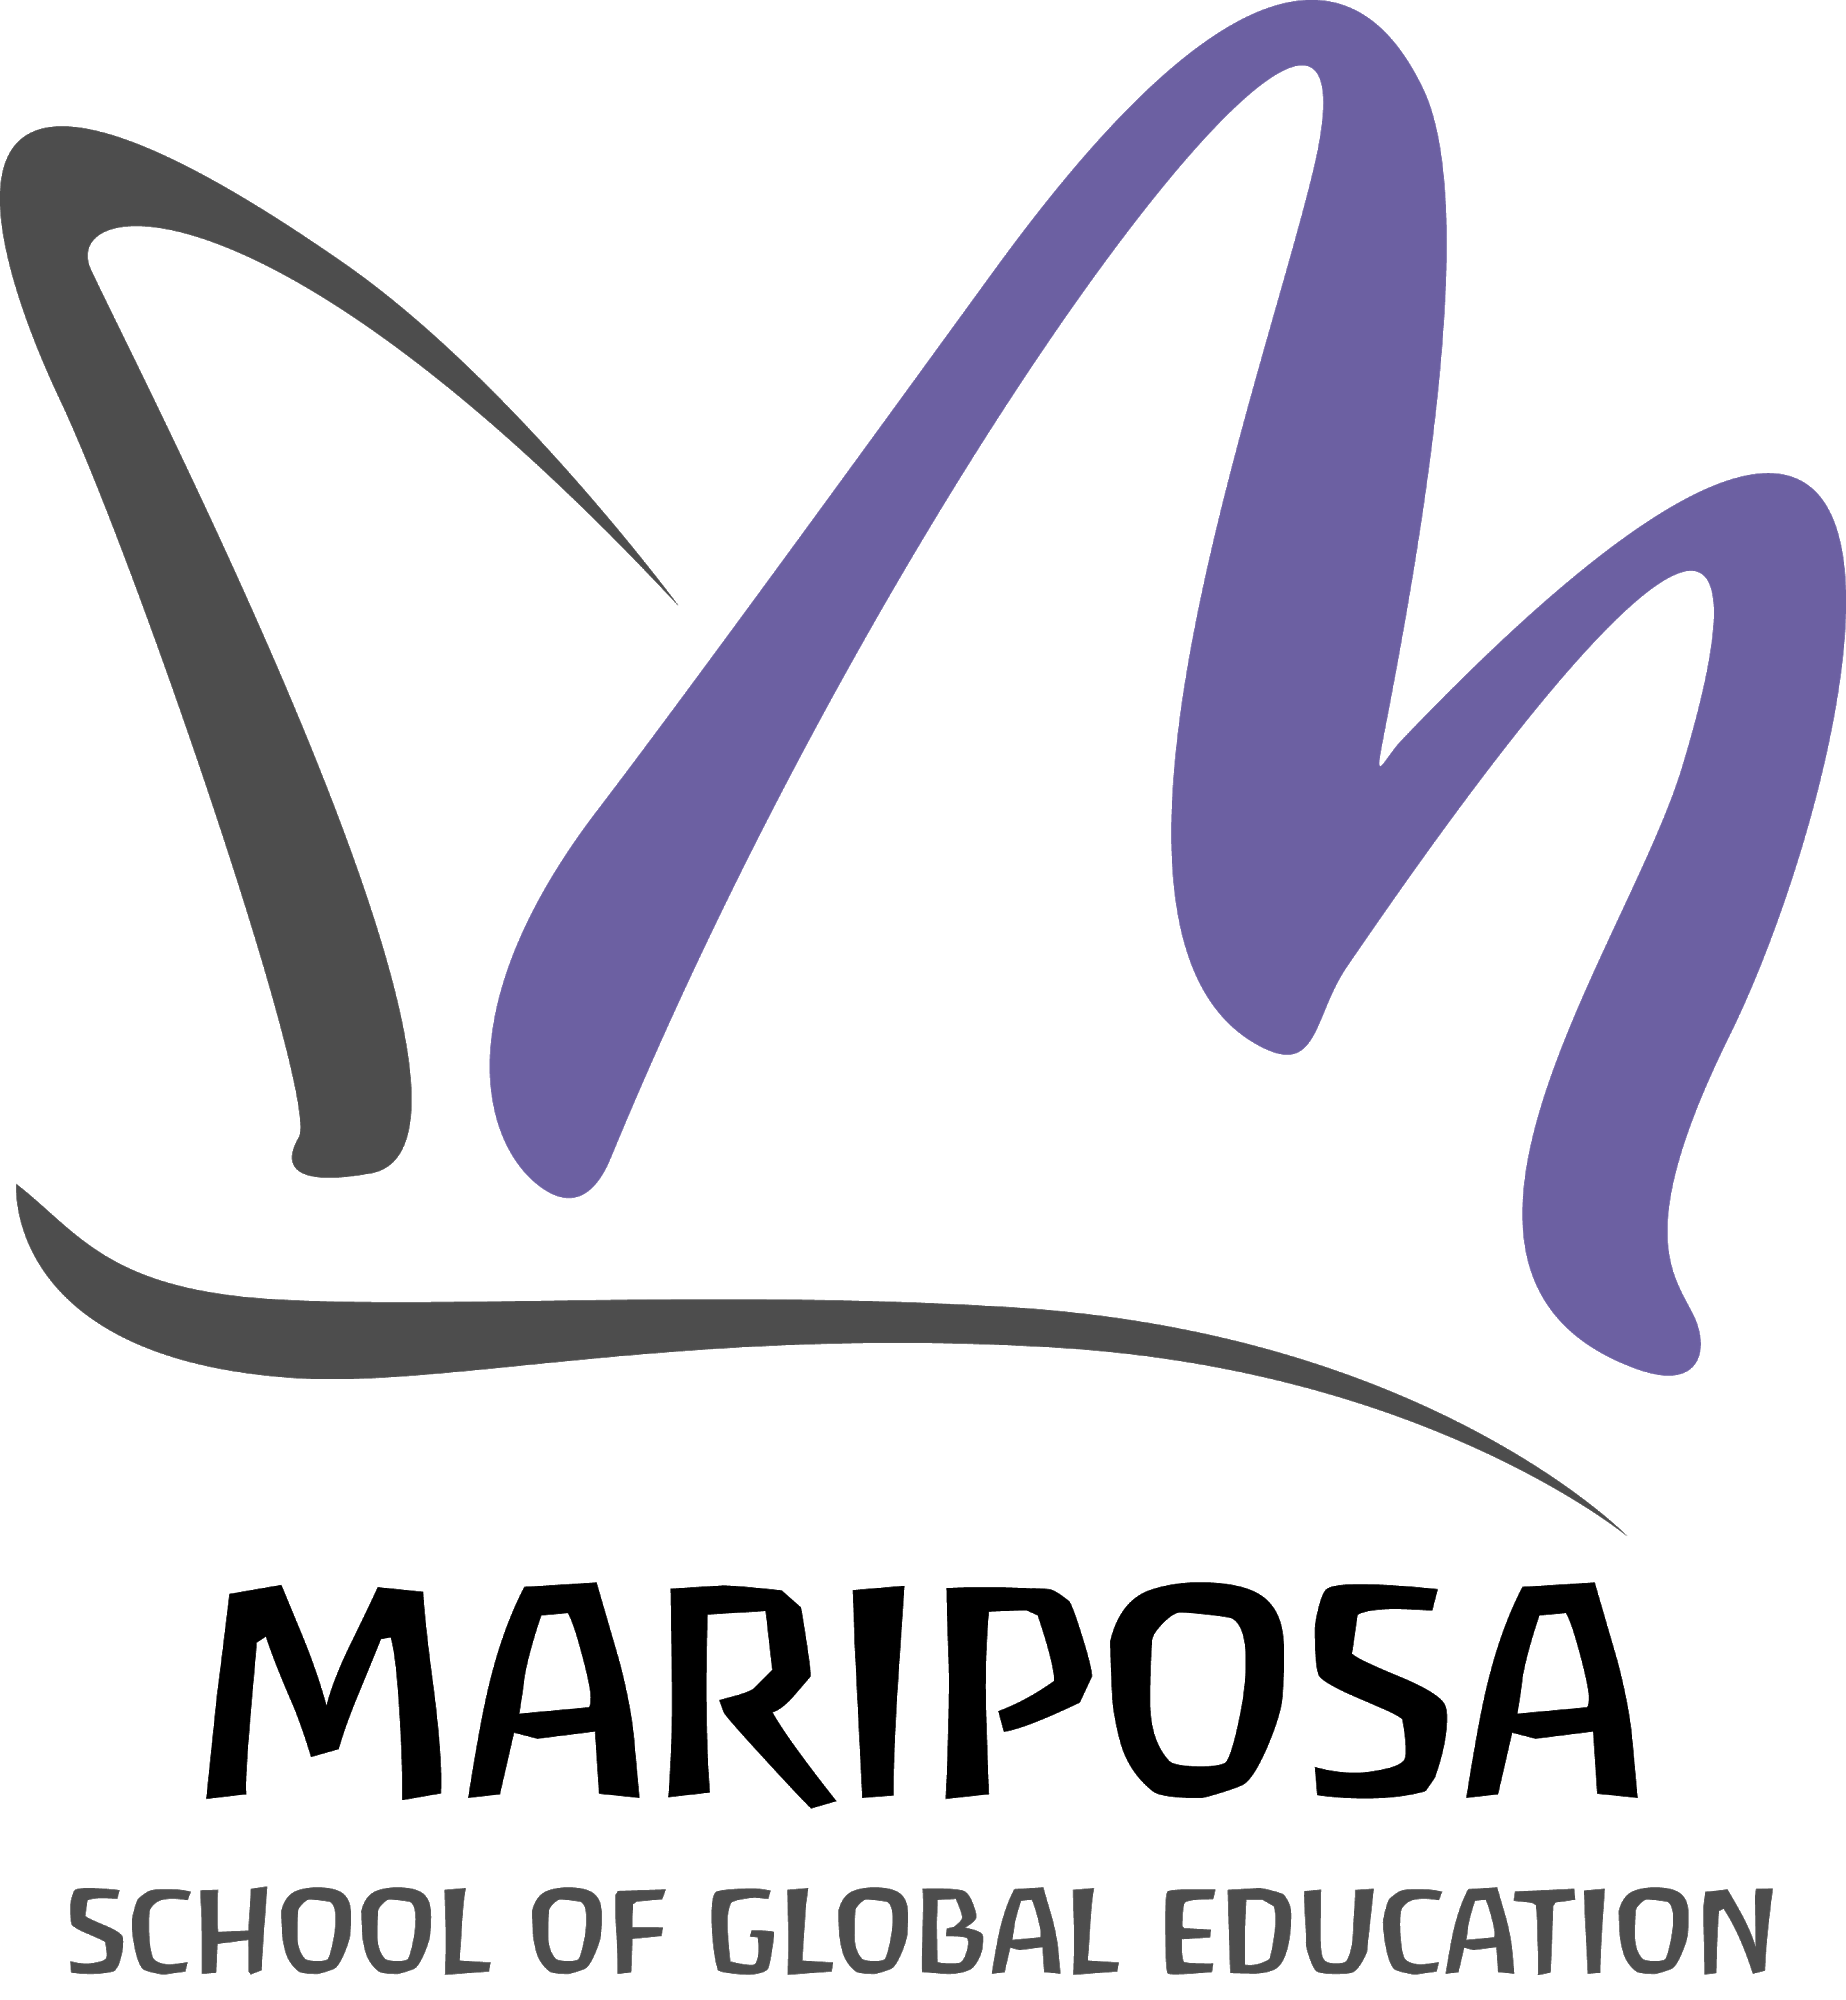 Mariposa School Of Global Education